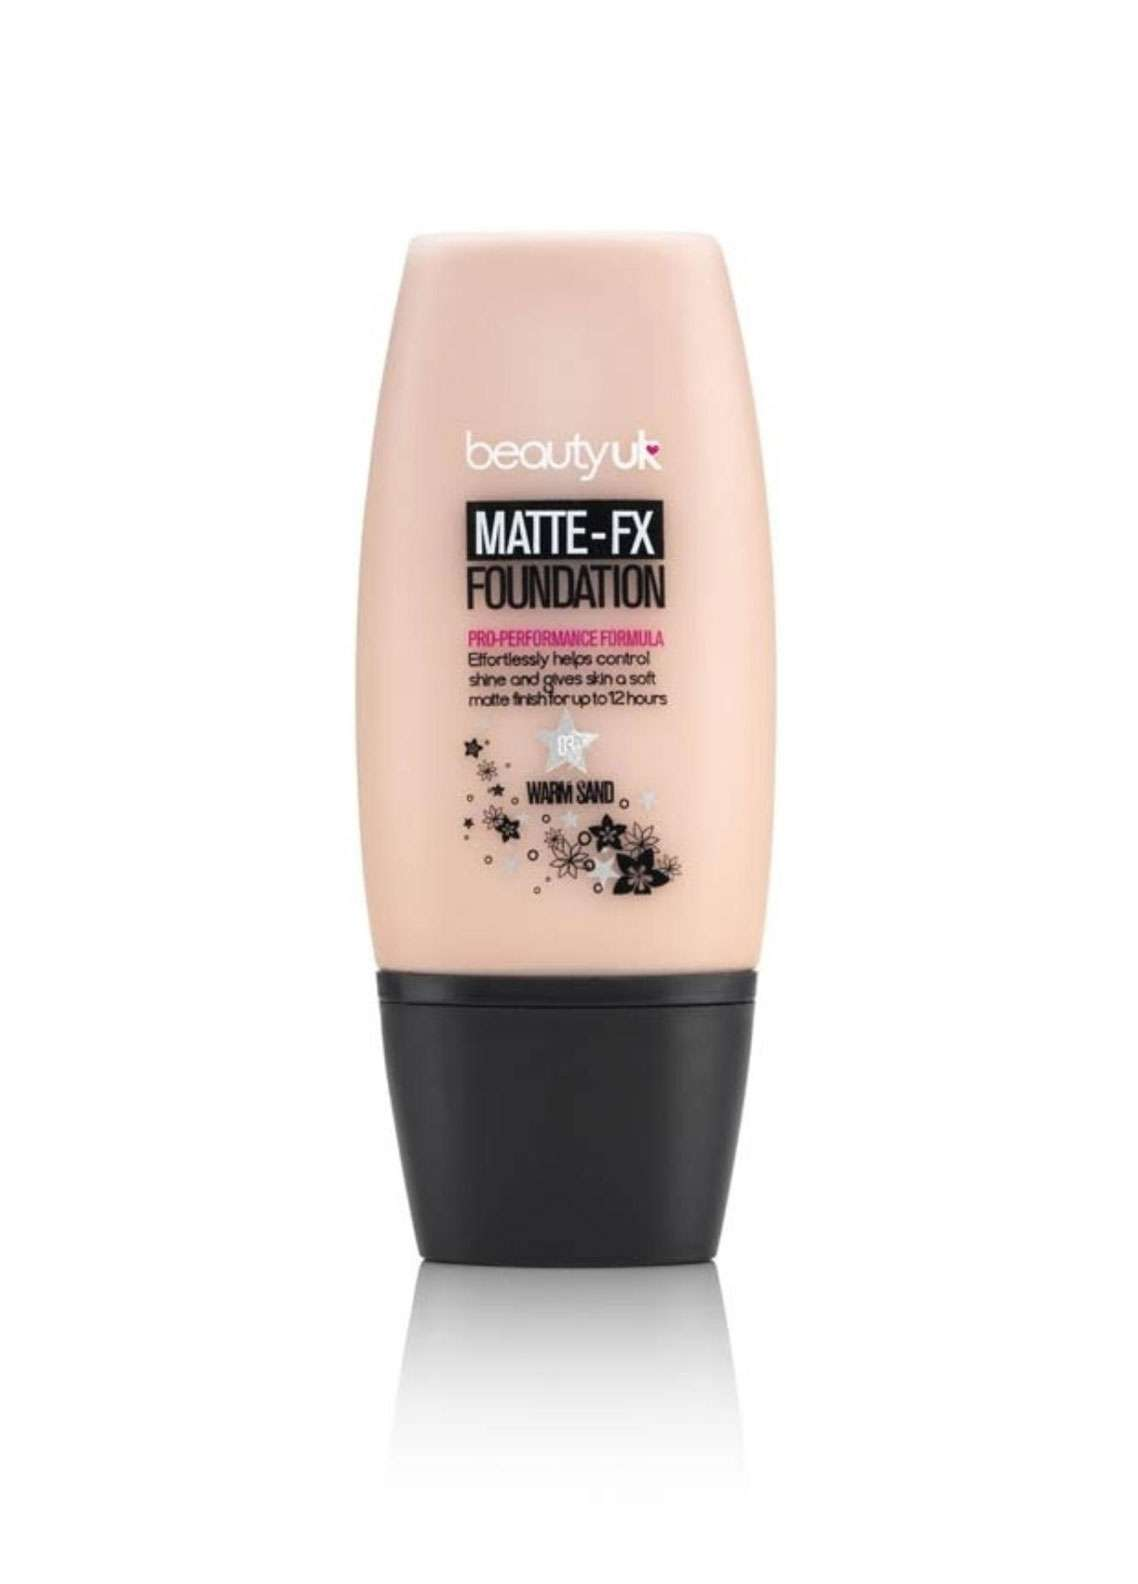 Beauty UK Matte FX Foundation - 3 Warm Sand